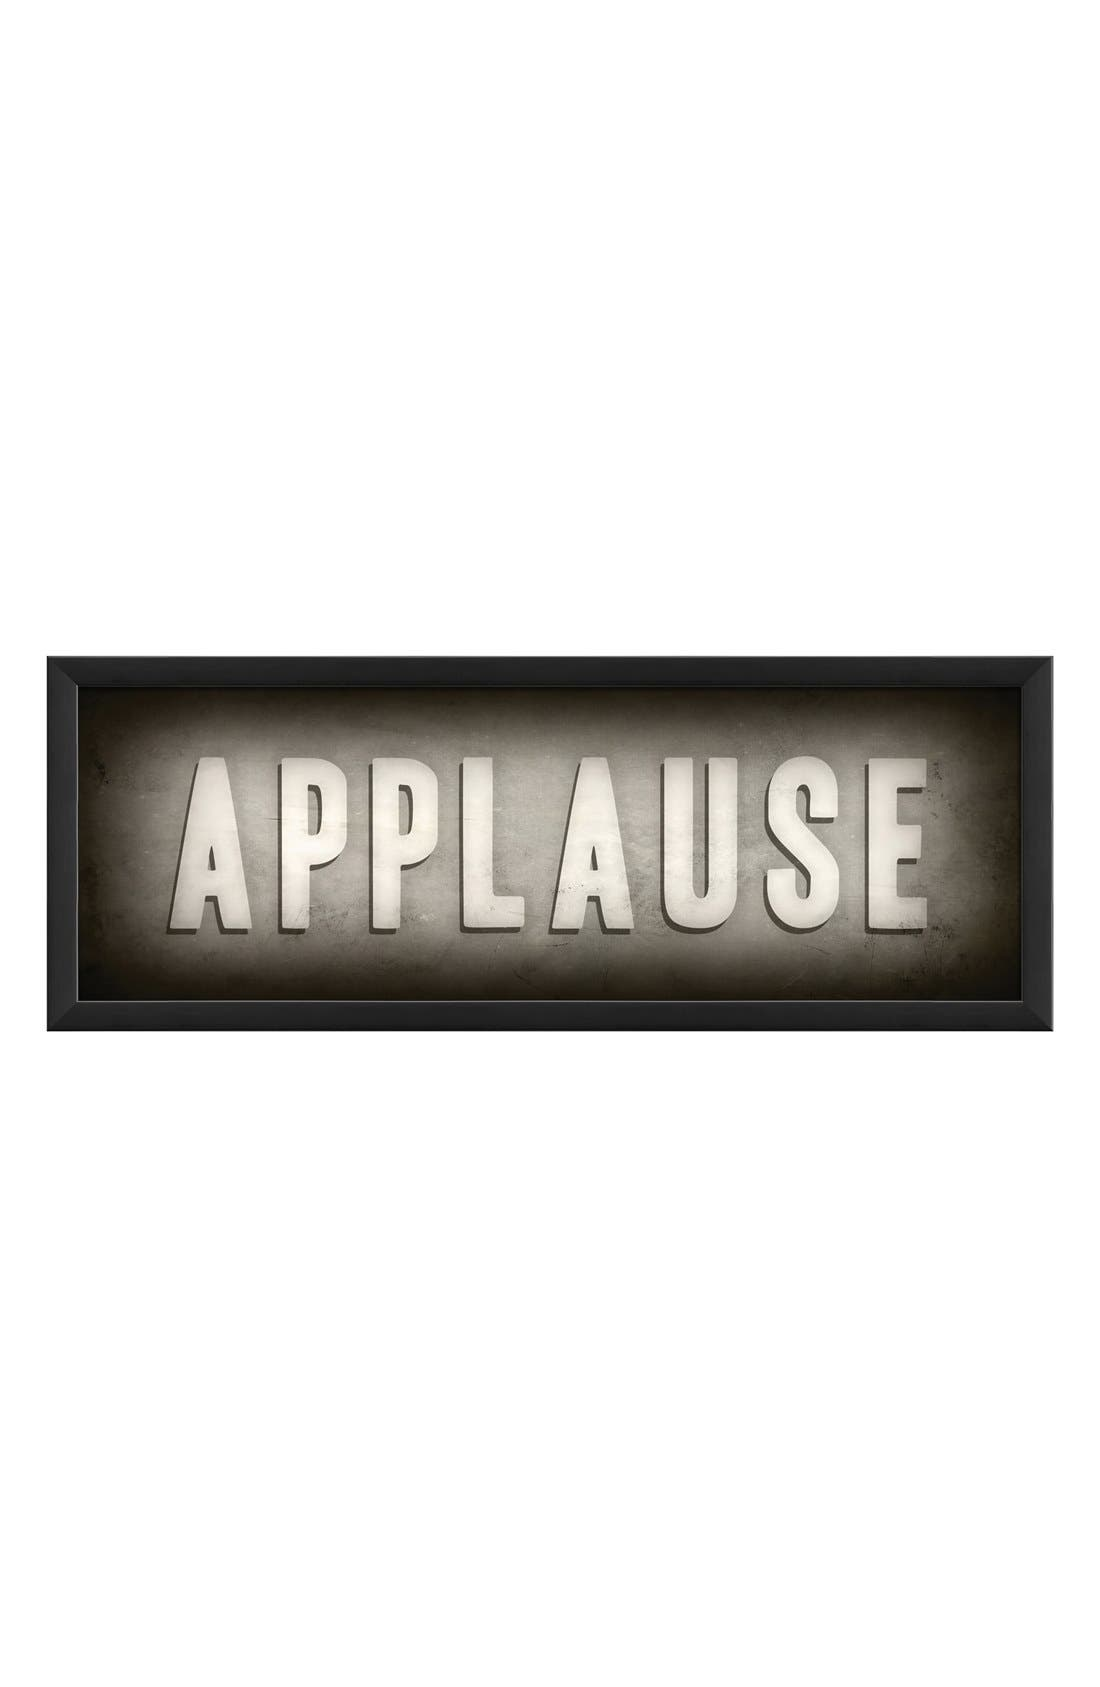 Alternate Image 1 Selected - Spicher and Company 'Applause' Theater Sign Artwork